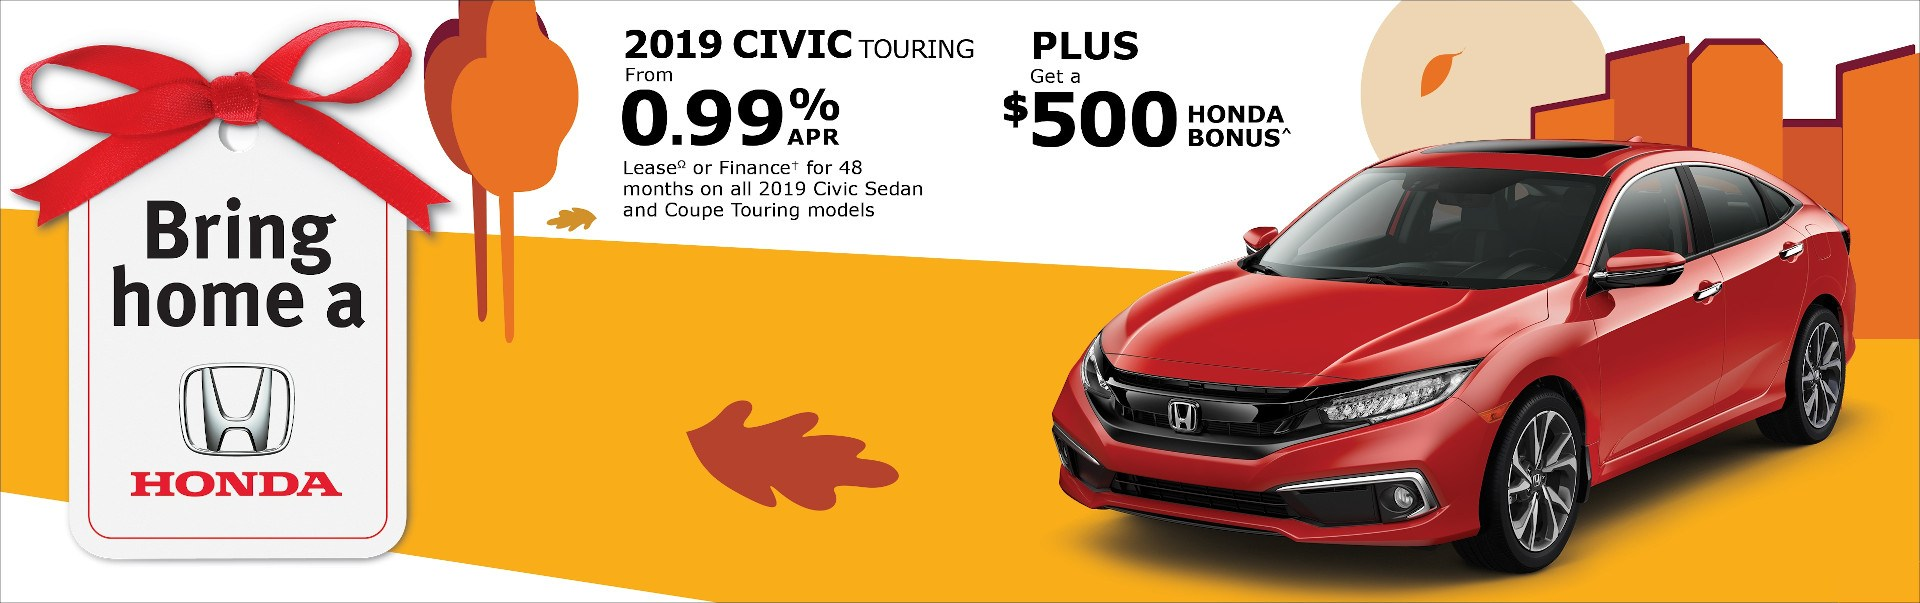 2019 Honda Civic at Richmond Hill Honda in Toronto and the GTA